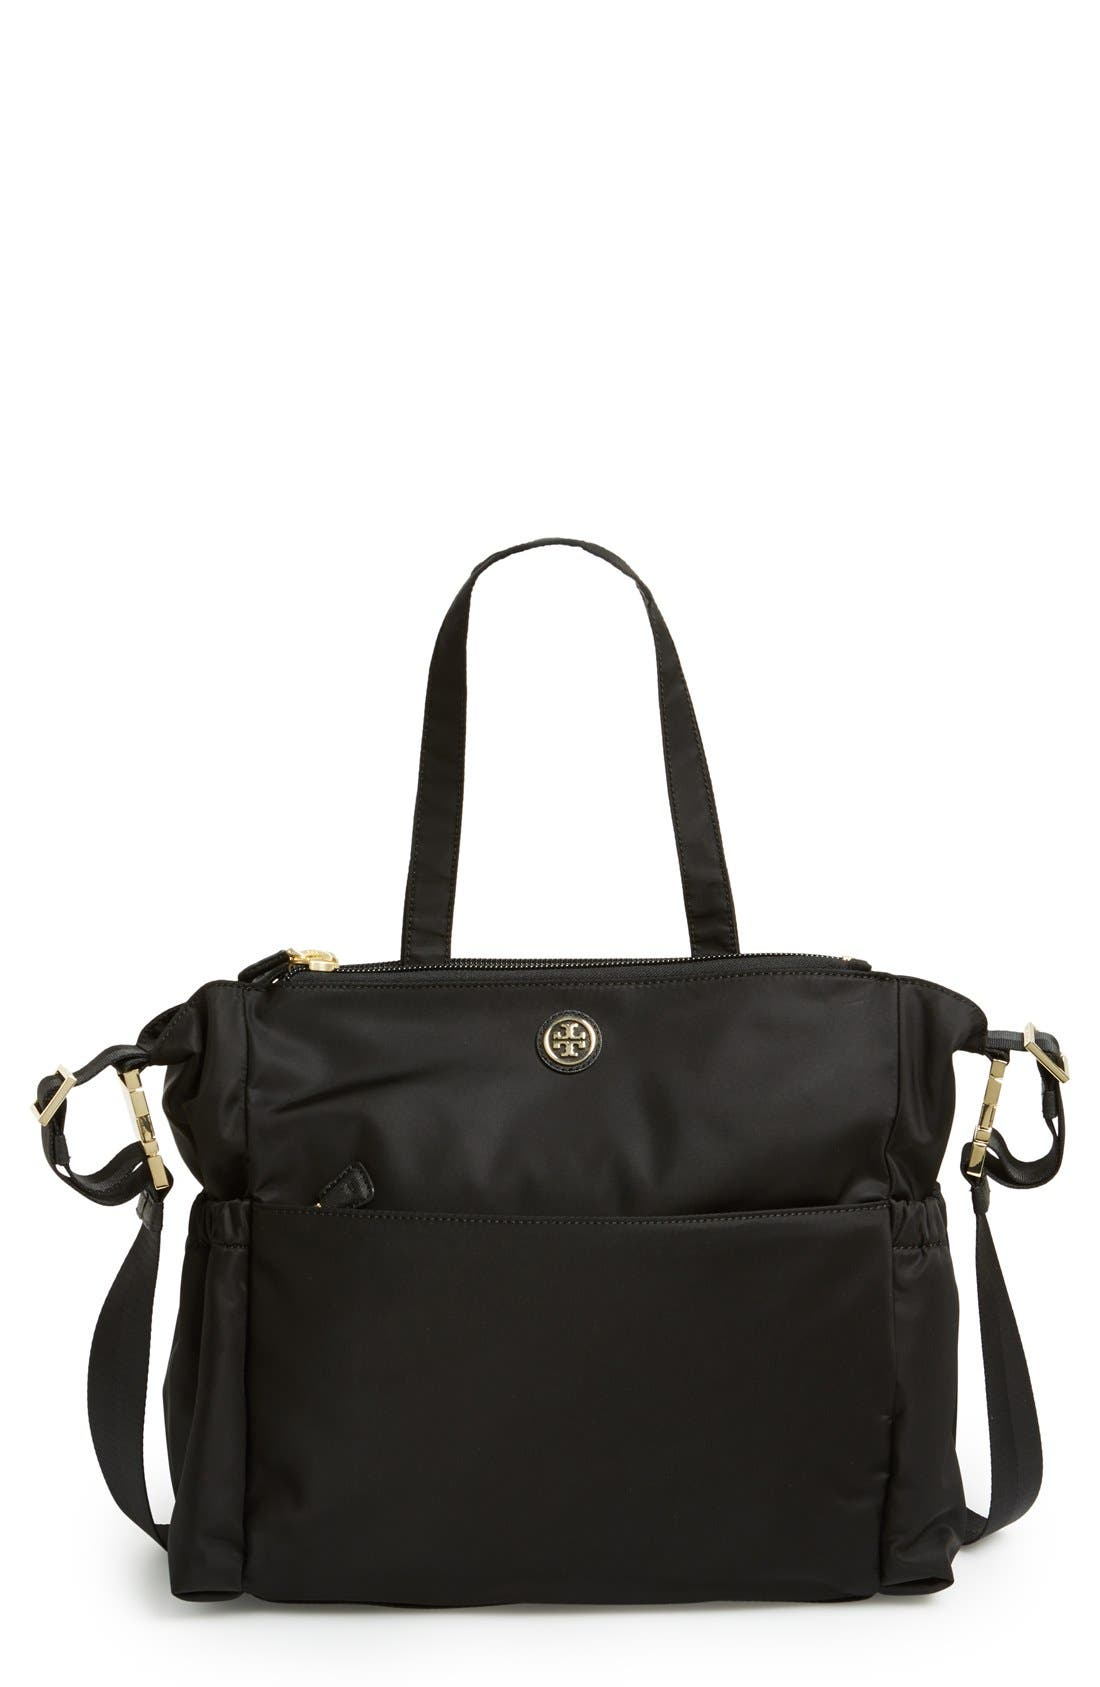 Alternate Image 1 Selected - Tory Burch Nylon Baby Bag